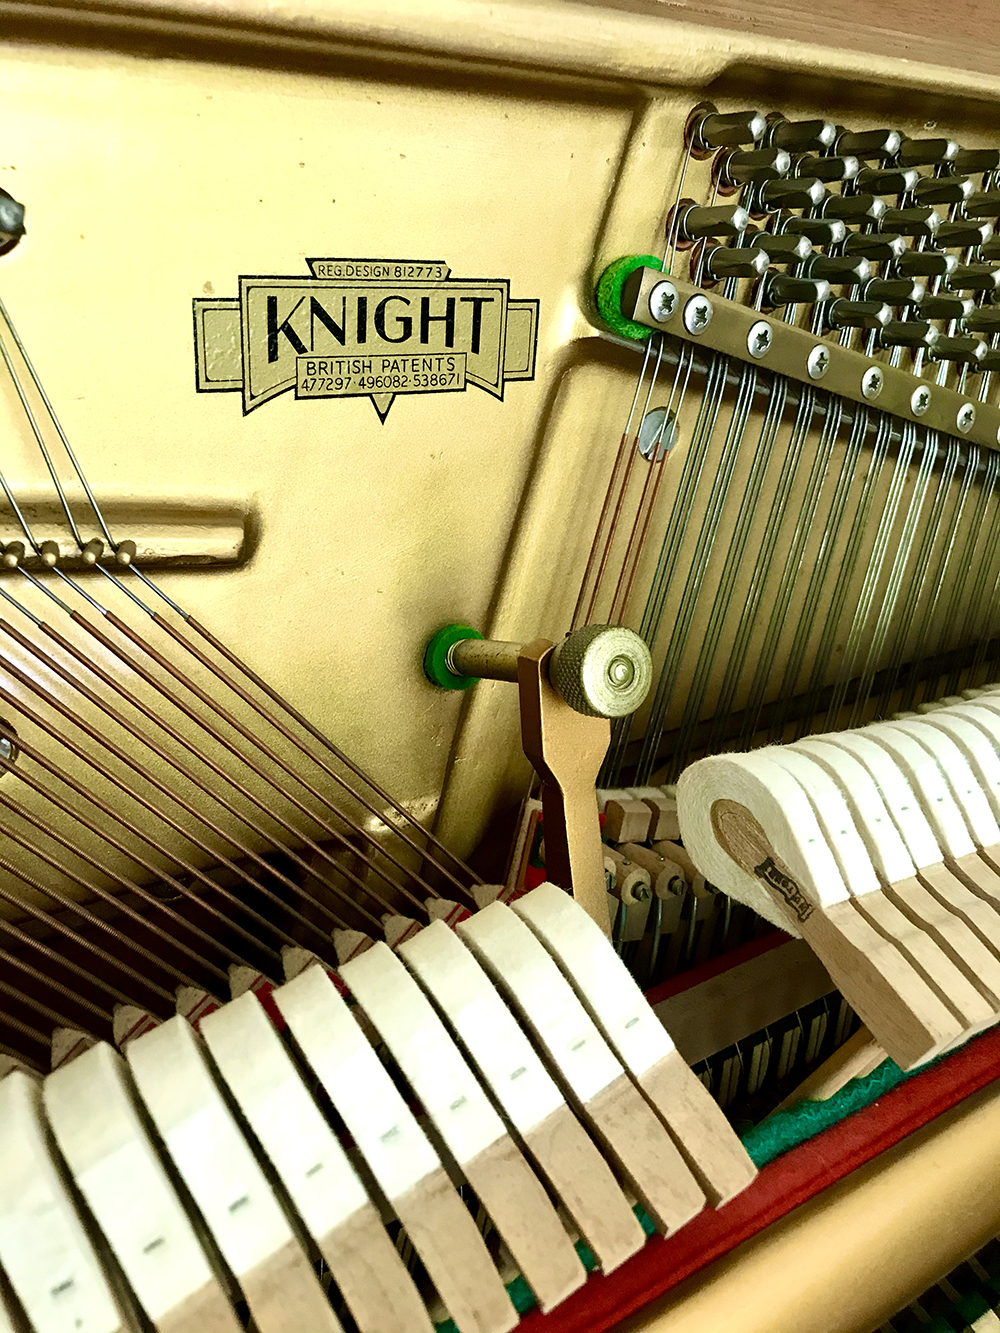 knight-k10-used-upright-Piano-Dorset-for-sale-1.jpg